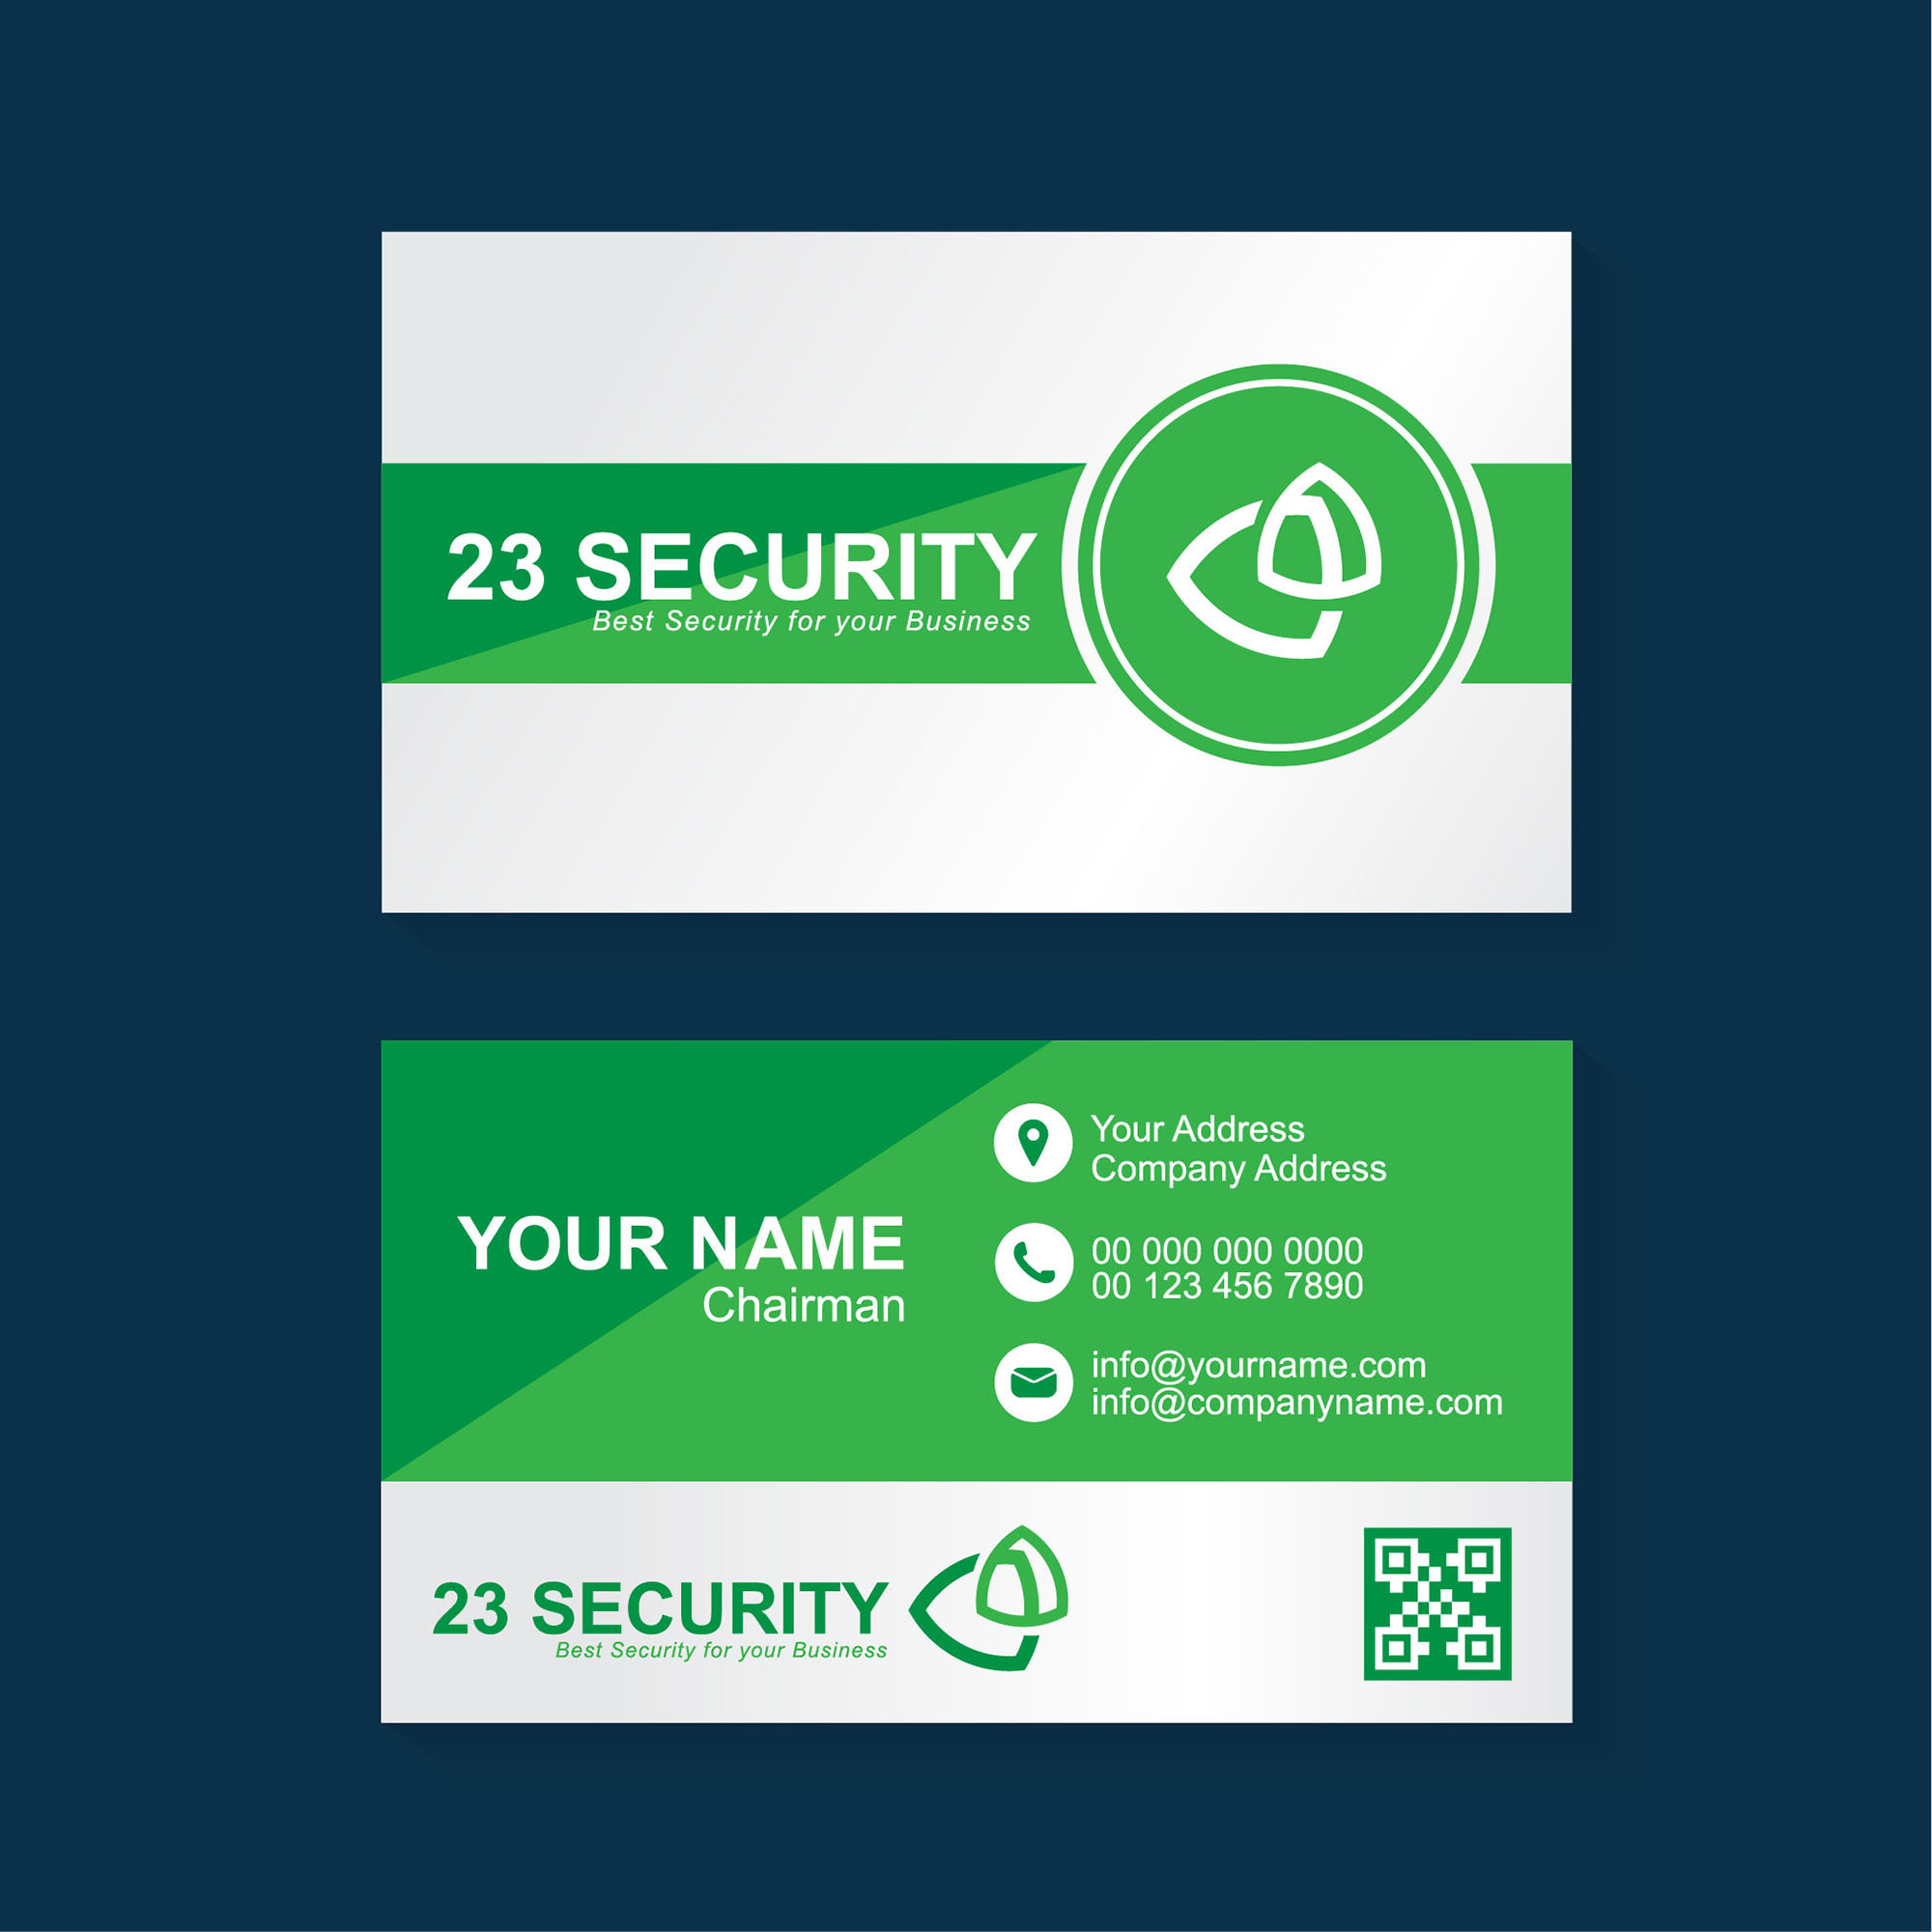 Security business card template free download wisxi business card business cards business card design business card template design templates reheart